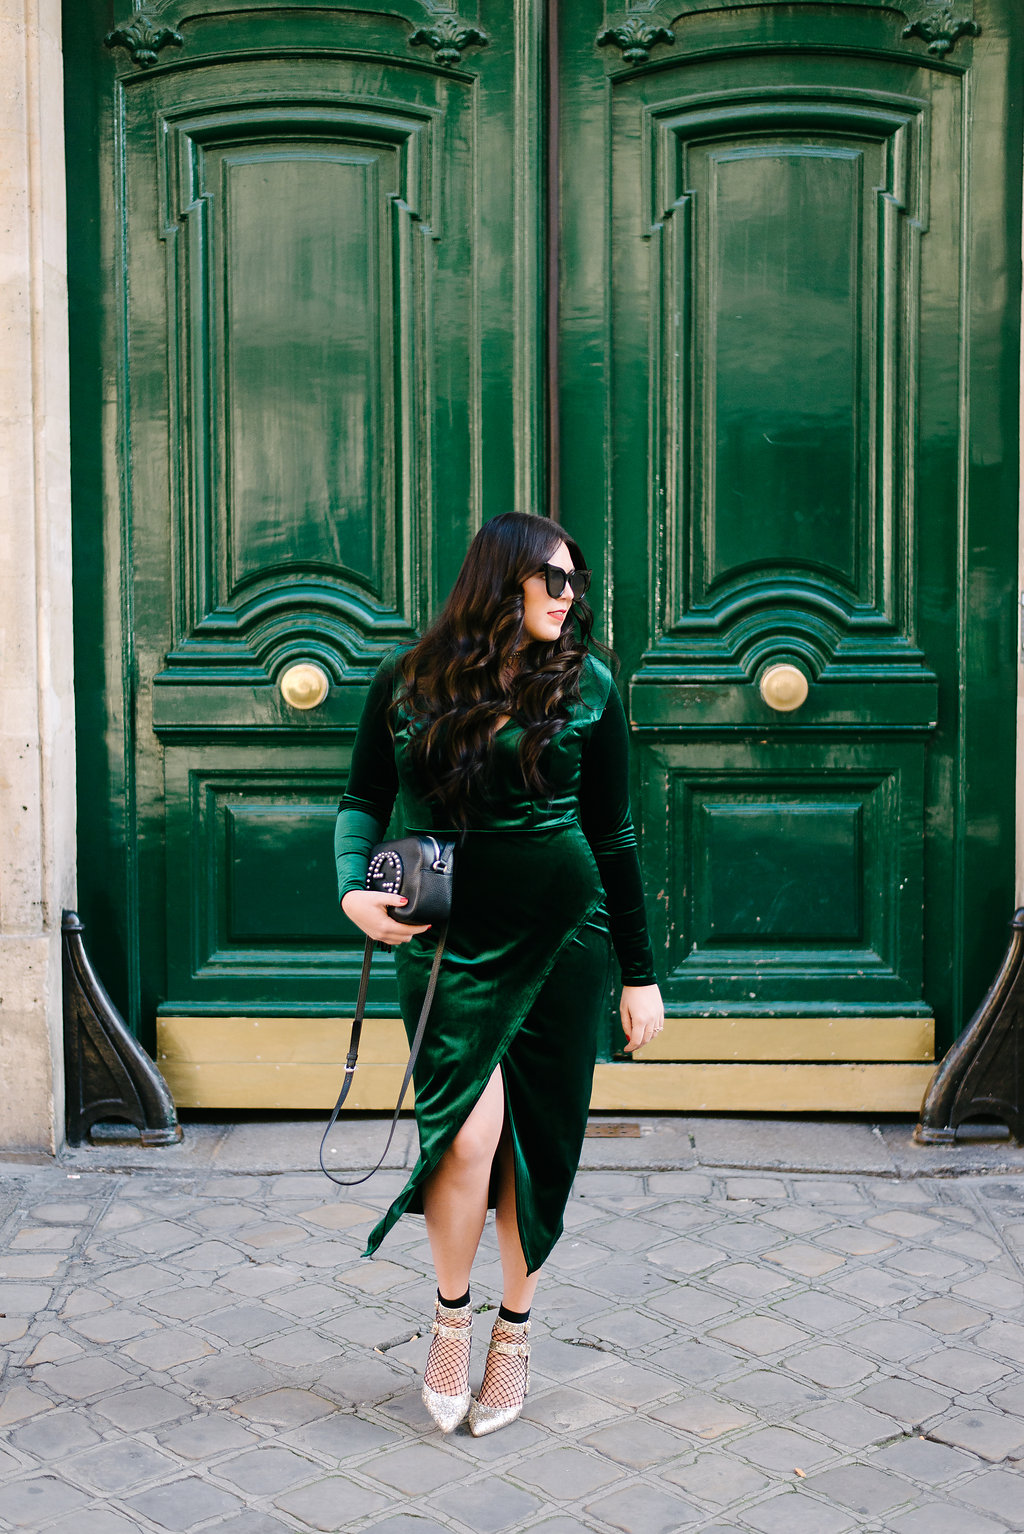 Green Velvet Dress, Fishnet Socks, and Gold Glitter Heels. By the way, Fishnets Are Back: Here are 18 Chic Ways to Wear Them. | glitterinc.com | @glitterinc